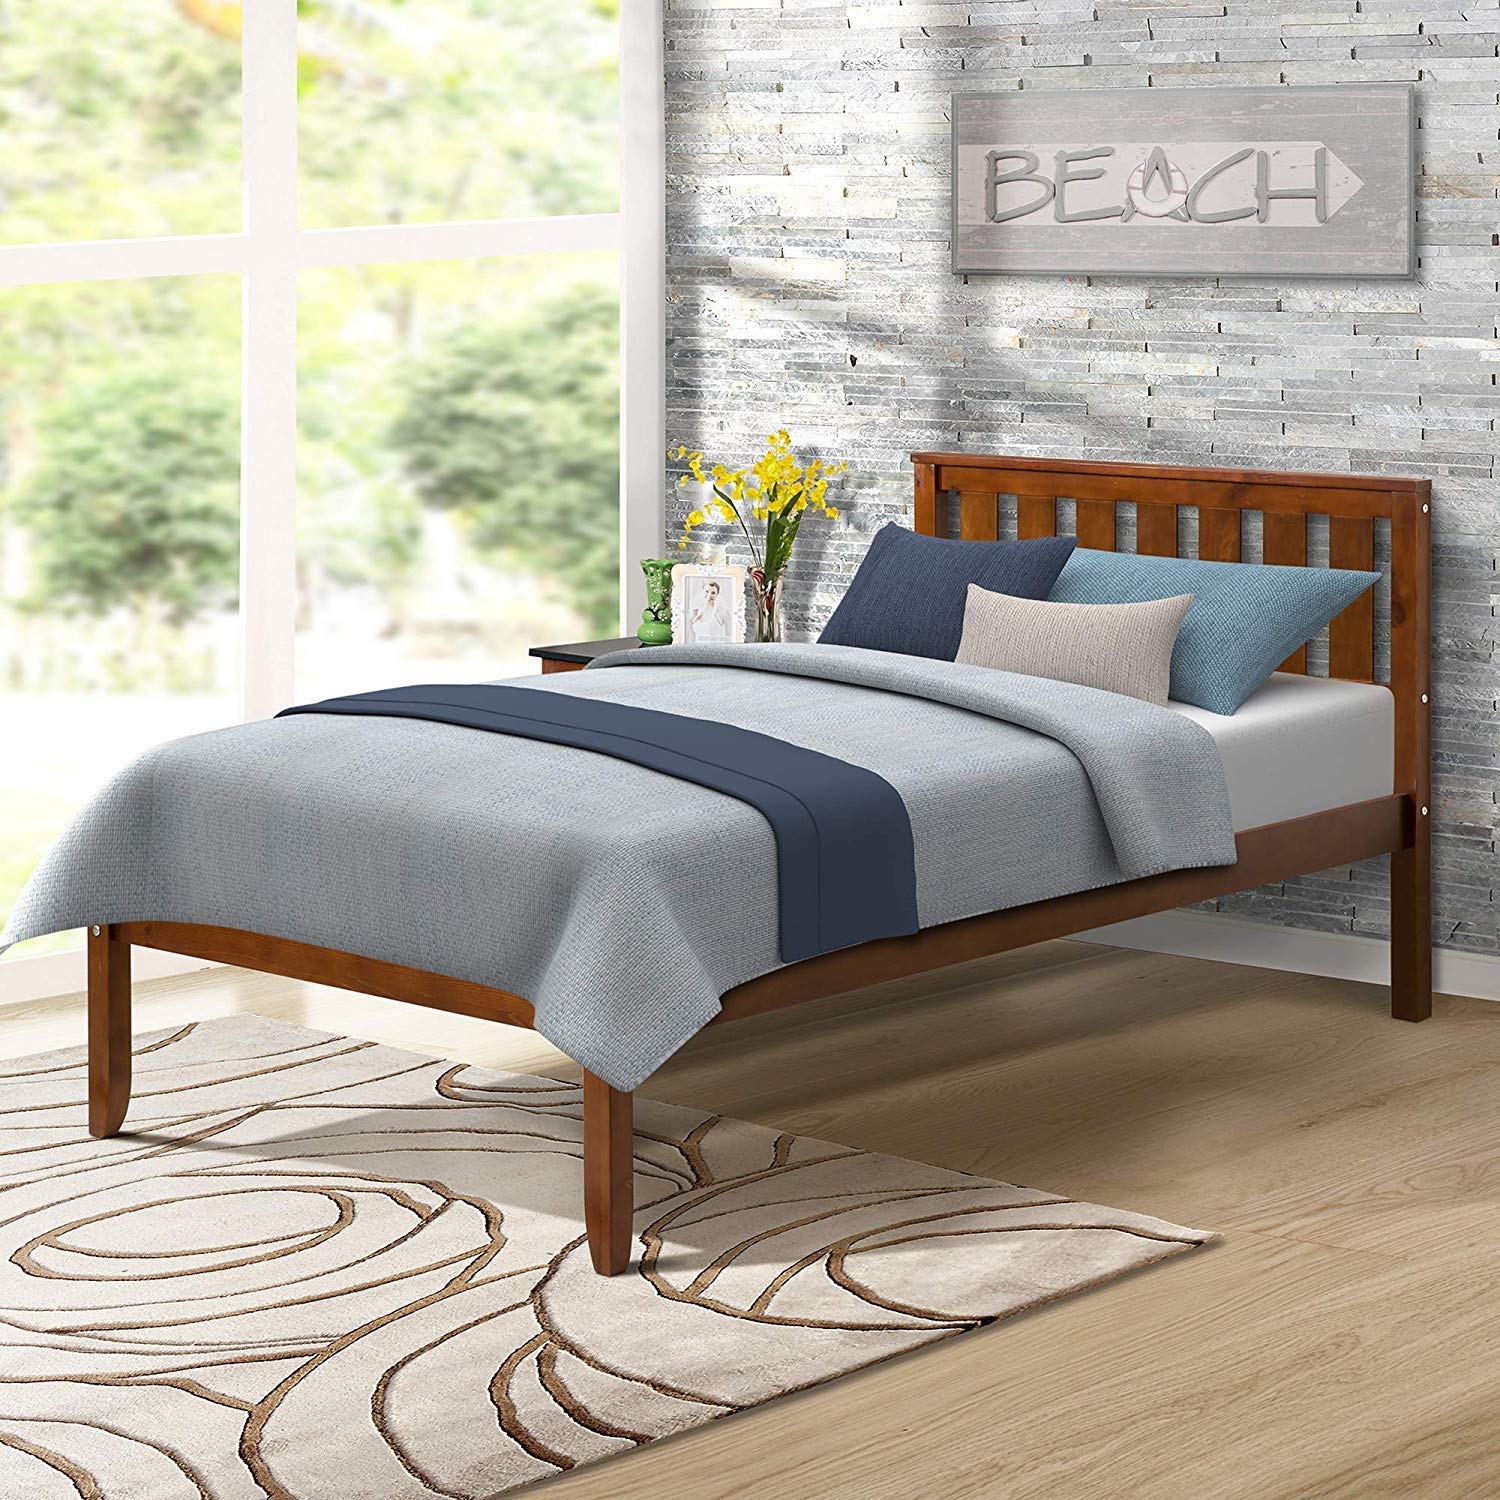 Deluxe Platform Bed with Headboard Wood Slat Support No Box Spring Nedded Twin, Walnut